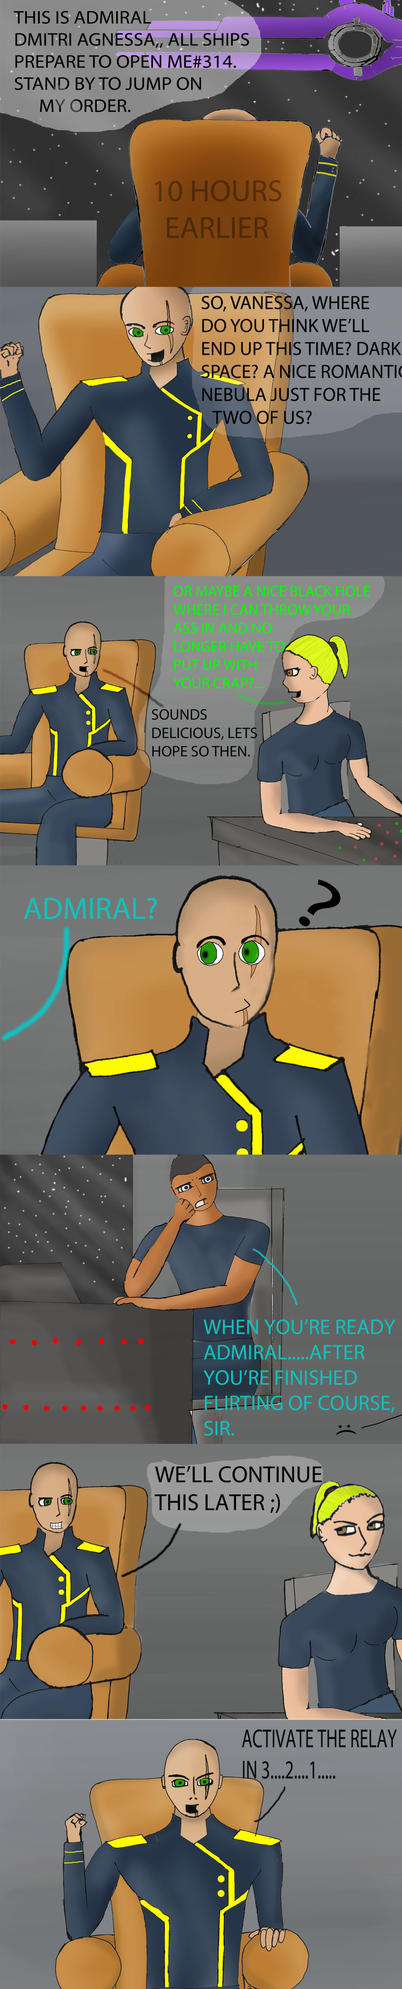 First contact prologue pg2 by rofl coppta on deviantart for Rofl meaning in chat